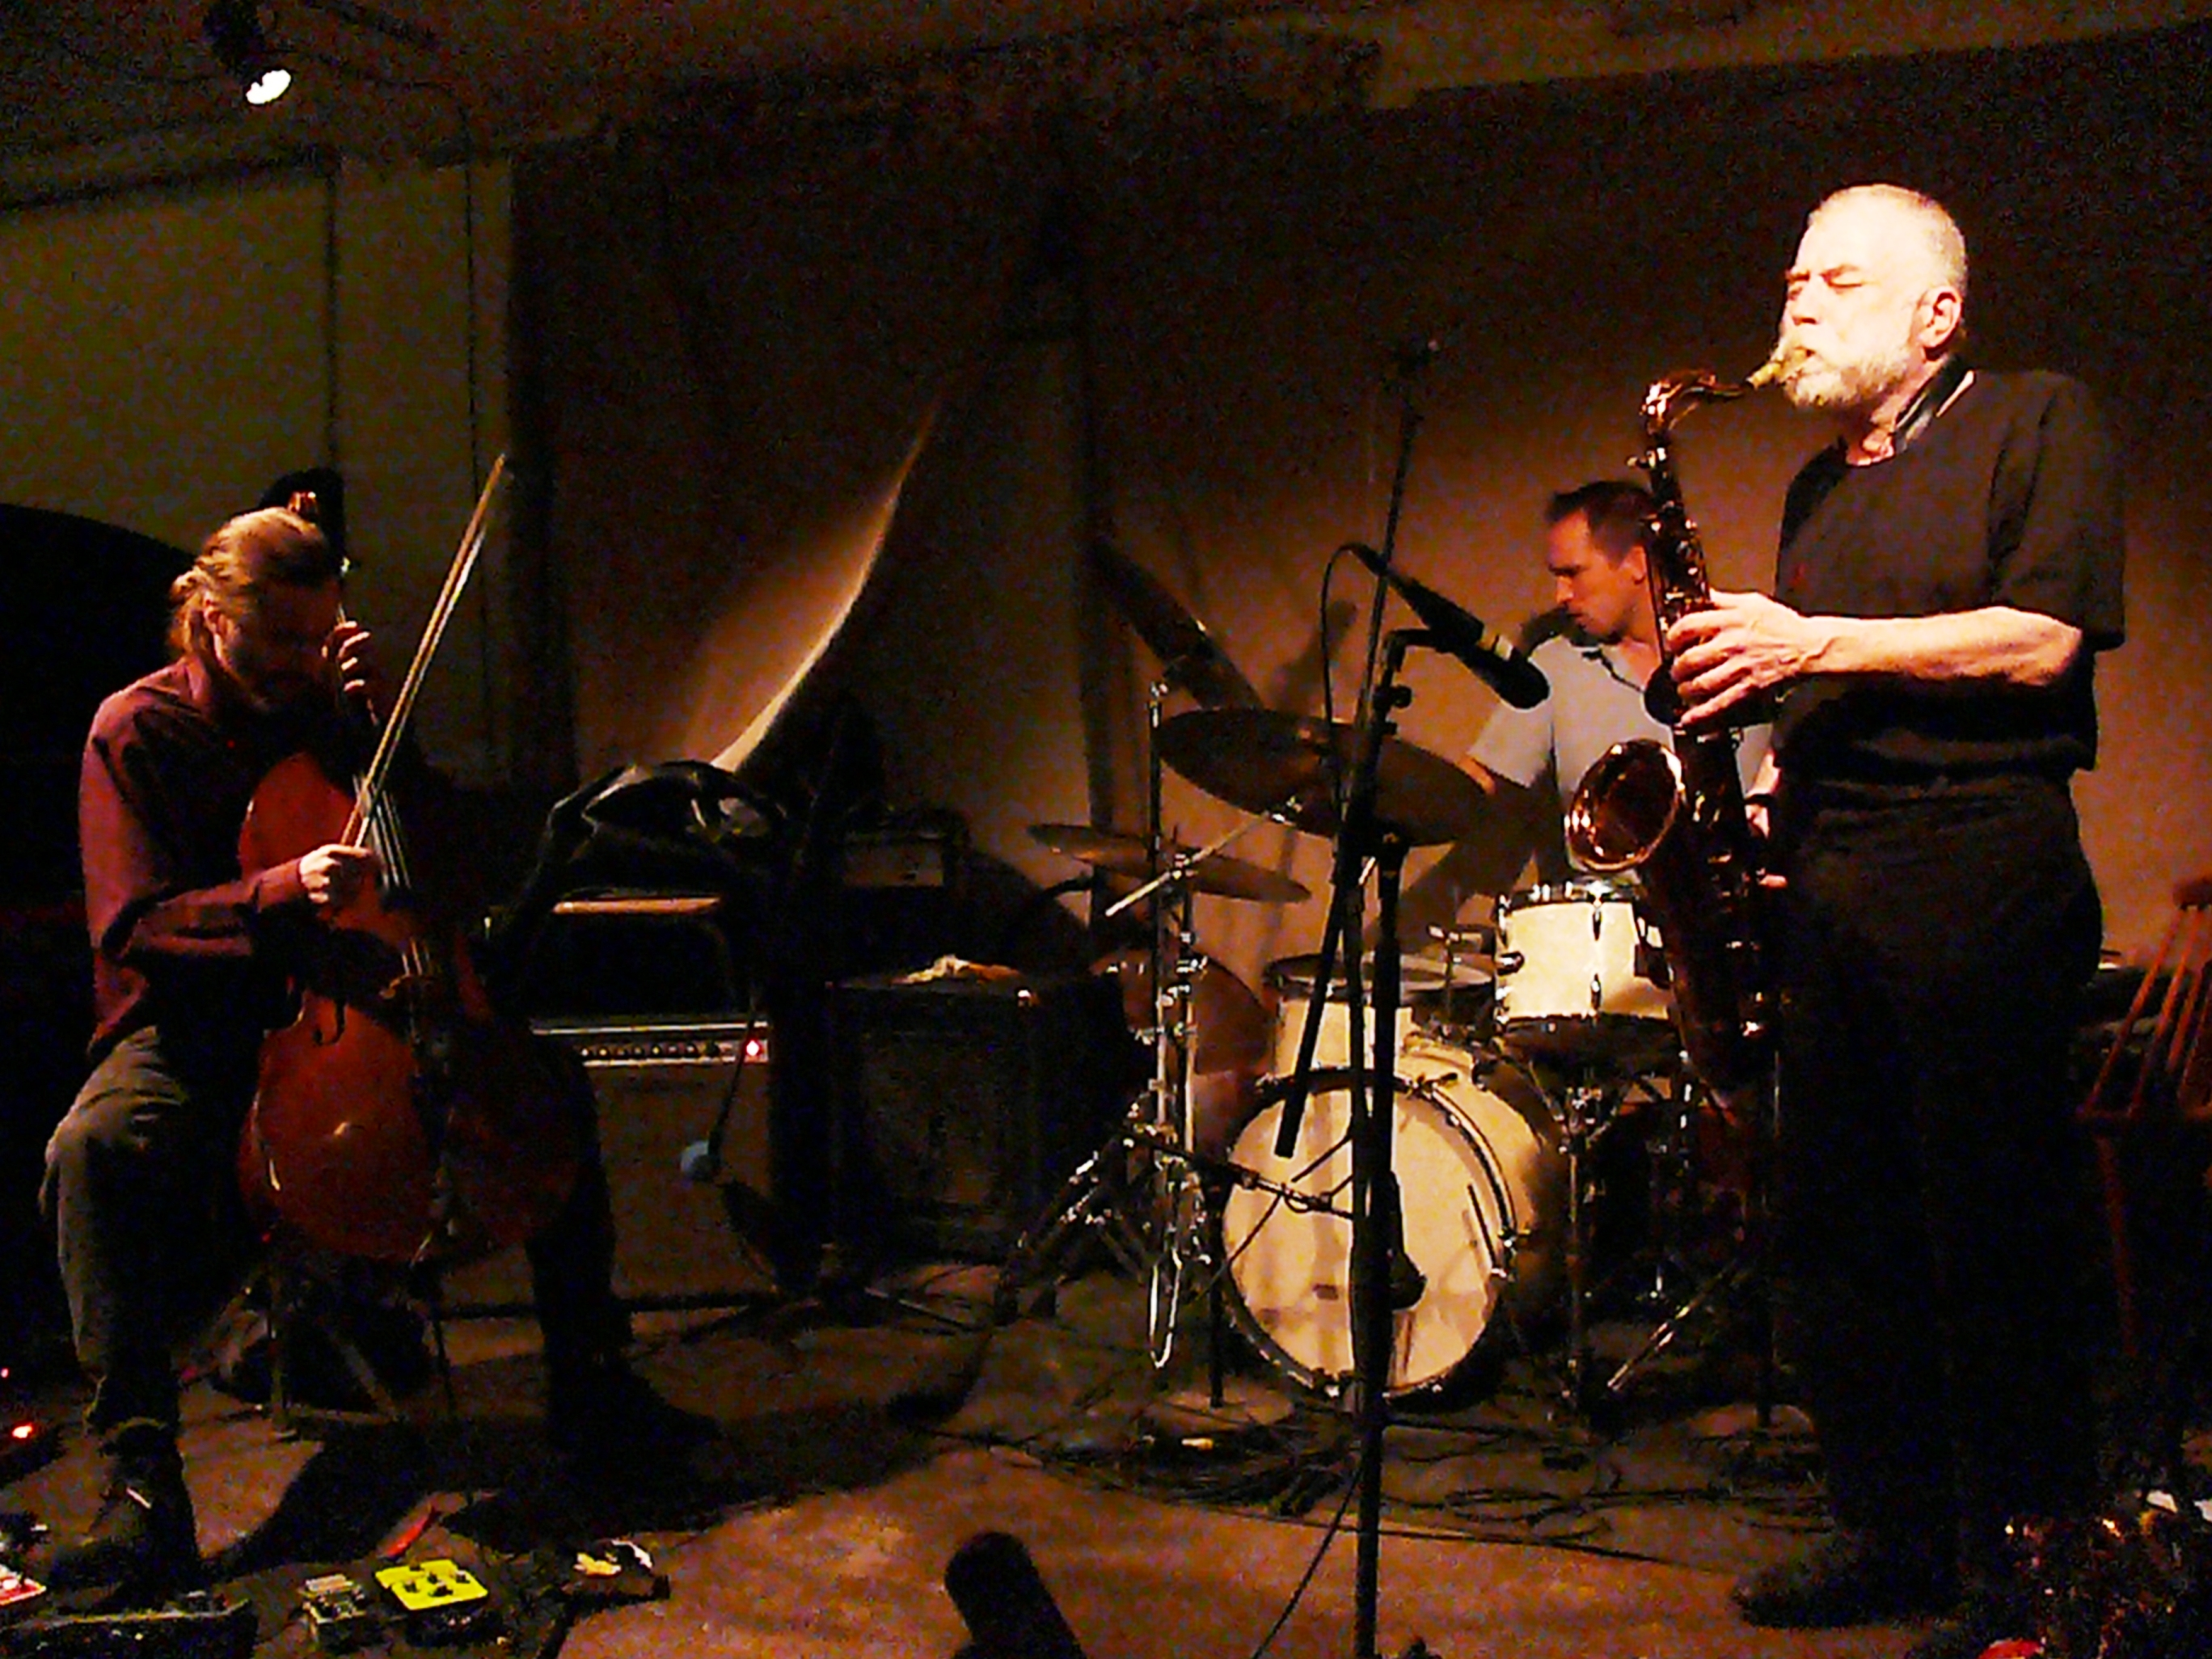 Fred Lonberg-Holm, Paal Nilssen-Love and Peter Brotzmann at Cafe Oto, London in November 2012